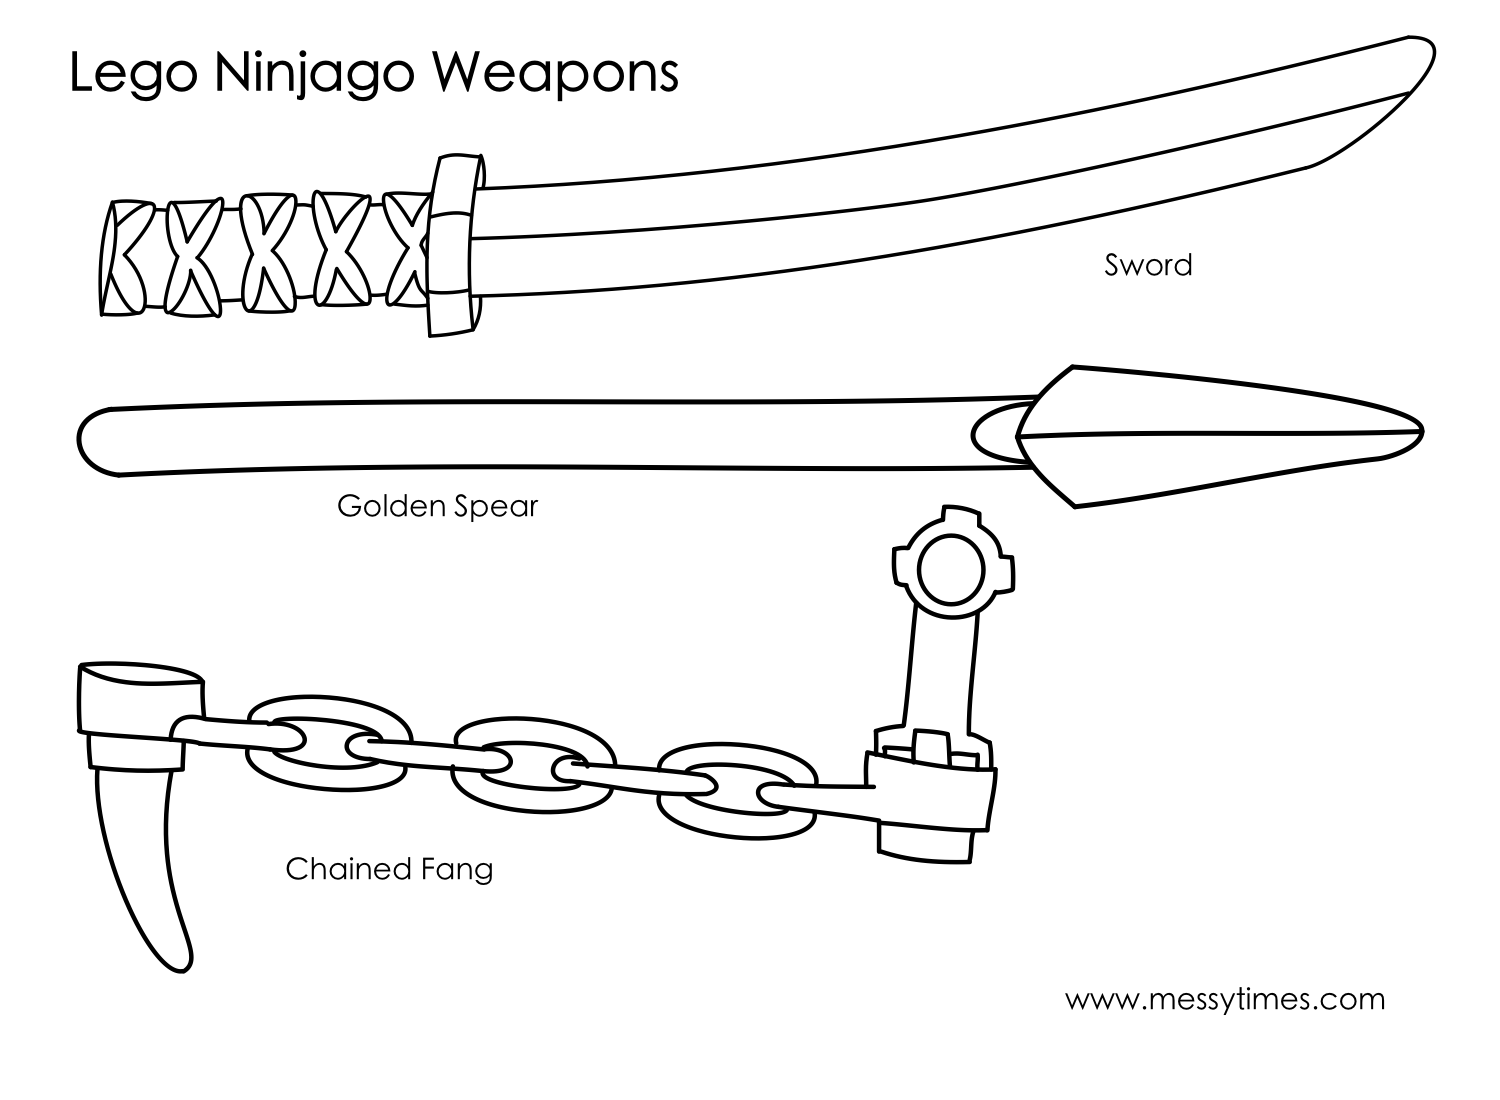 Lego Ninjago Weapon - Sword of Fire, Golden Spear and Chained Fang